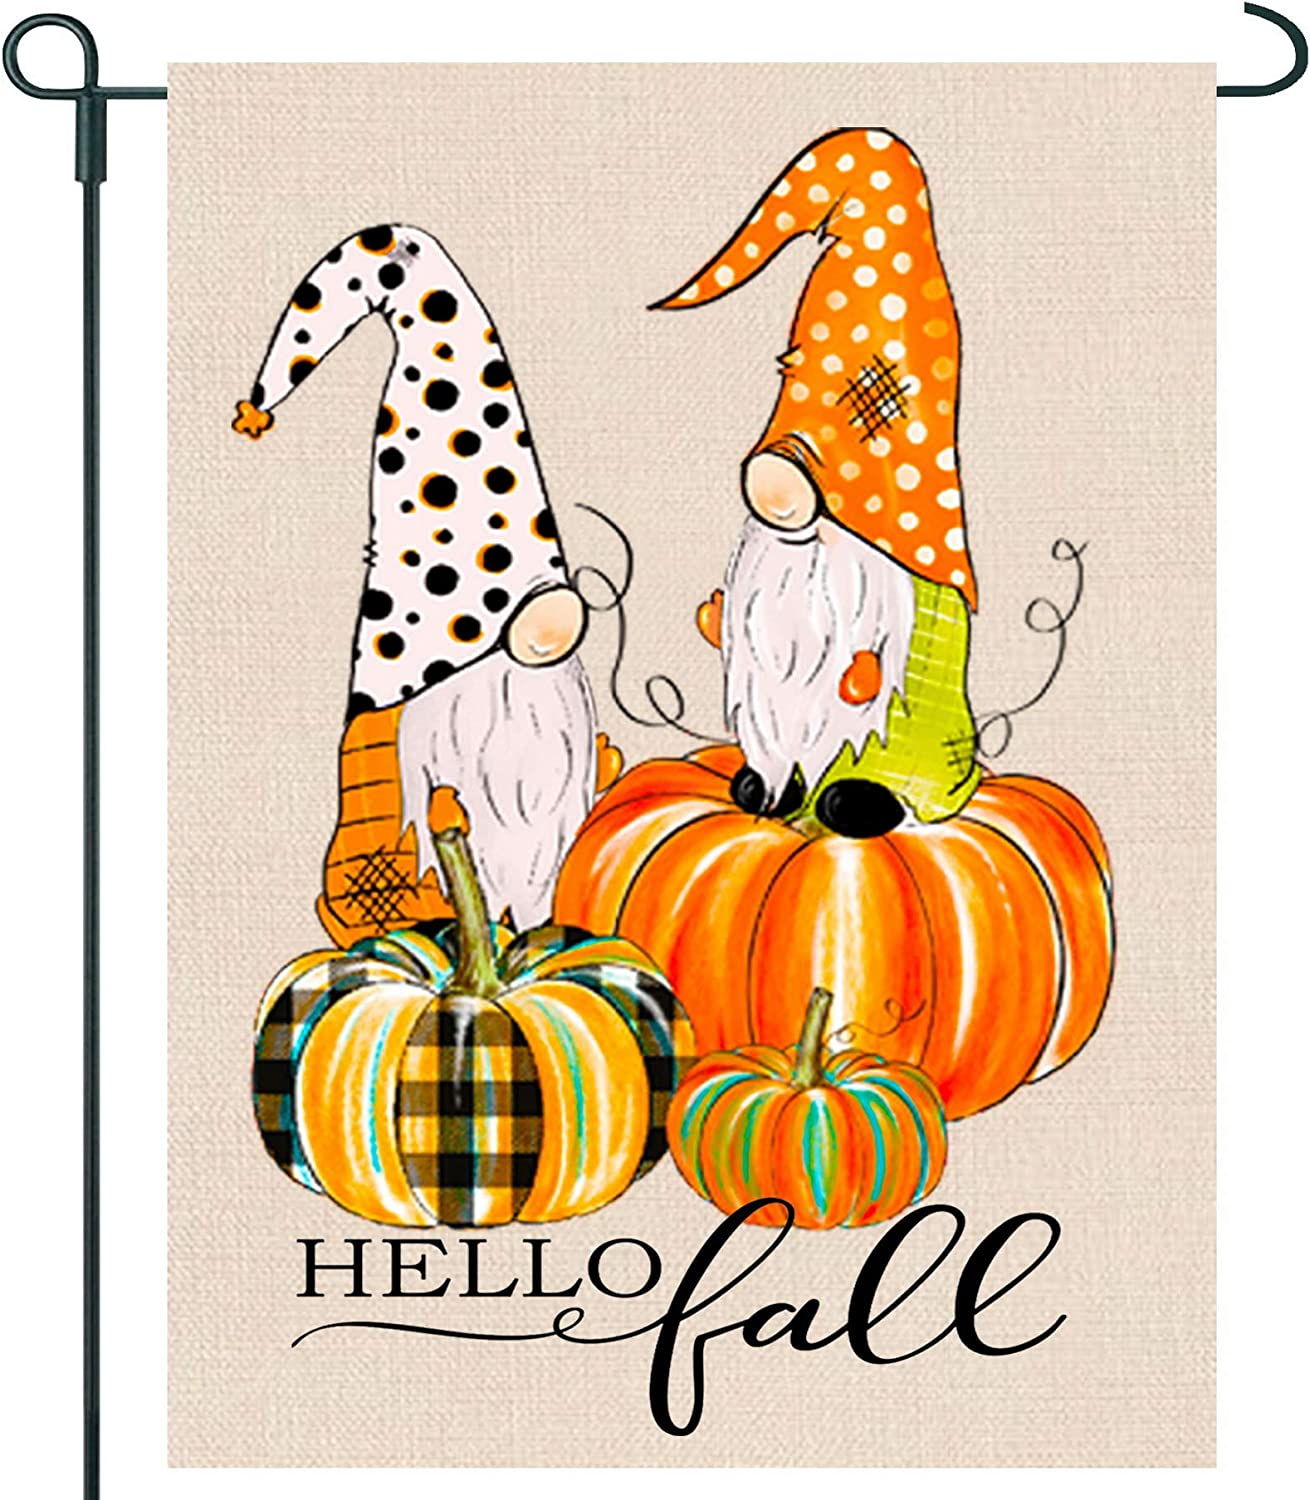 GRNPOWER Hello Fall Garden Flag - Fall Decor for Yard Outdoor Farmhouse Patio Lawn Autumn Decoration, Pumpkin Gnomes Flag, 2-Sided Vertical burlaps 12.5 x 18 in